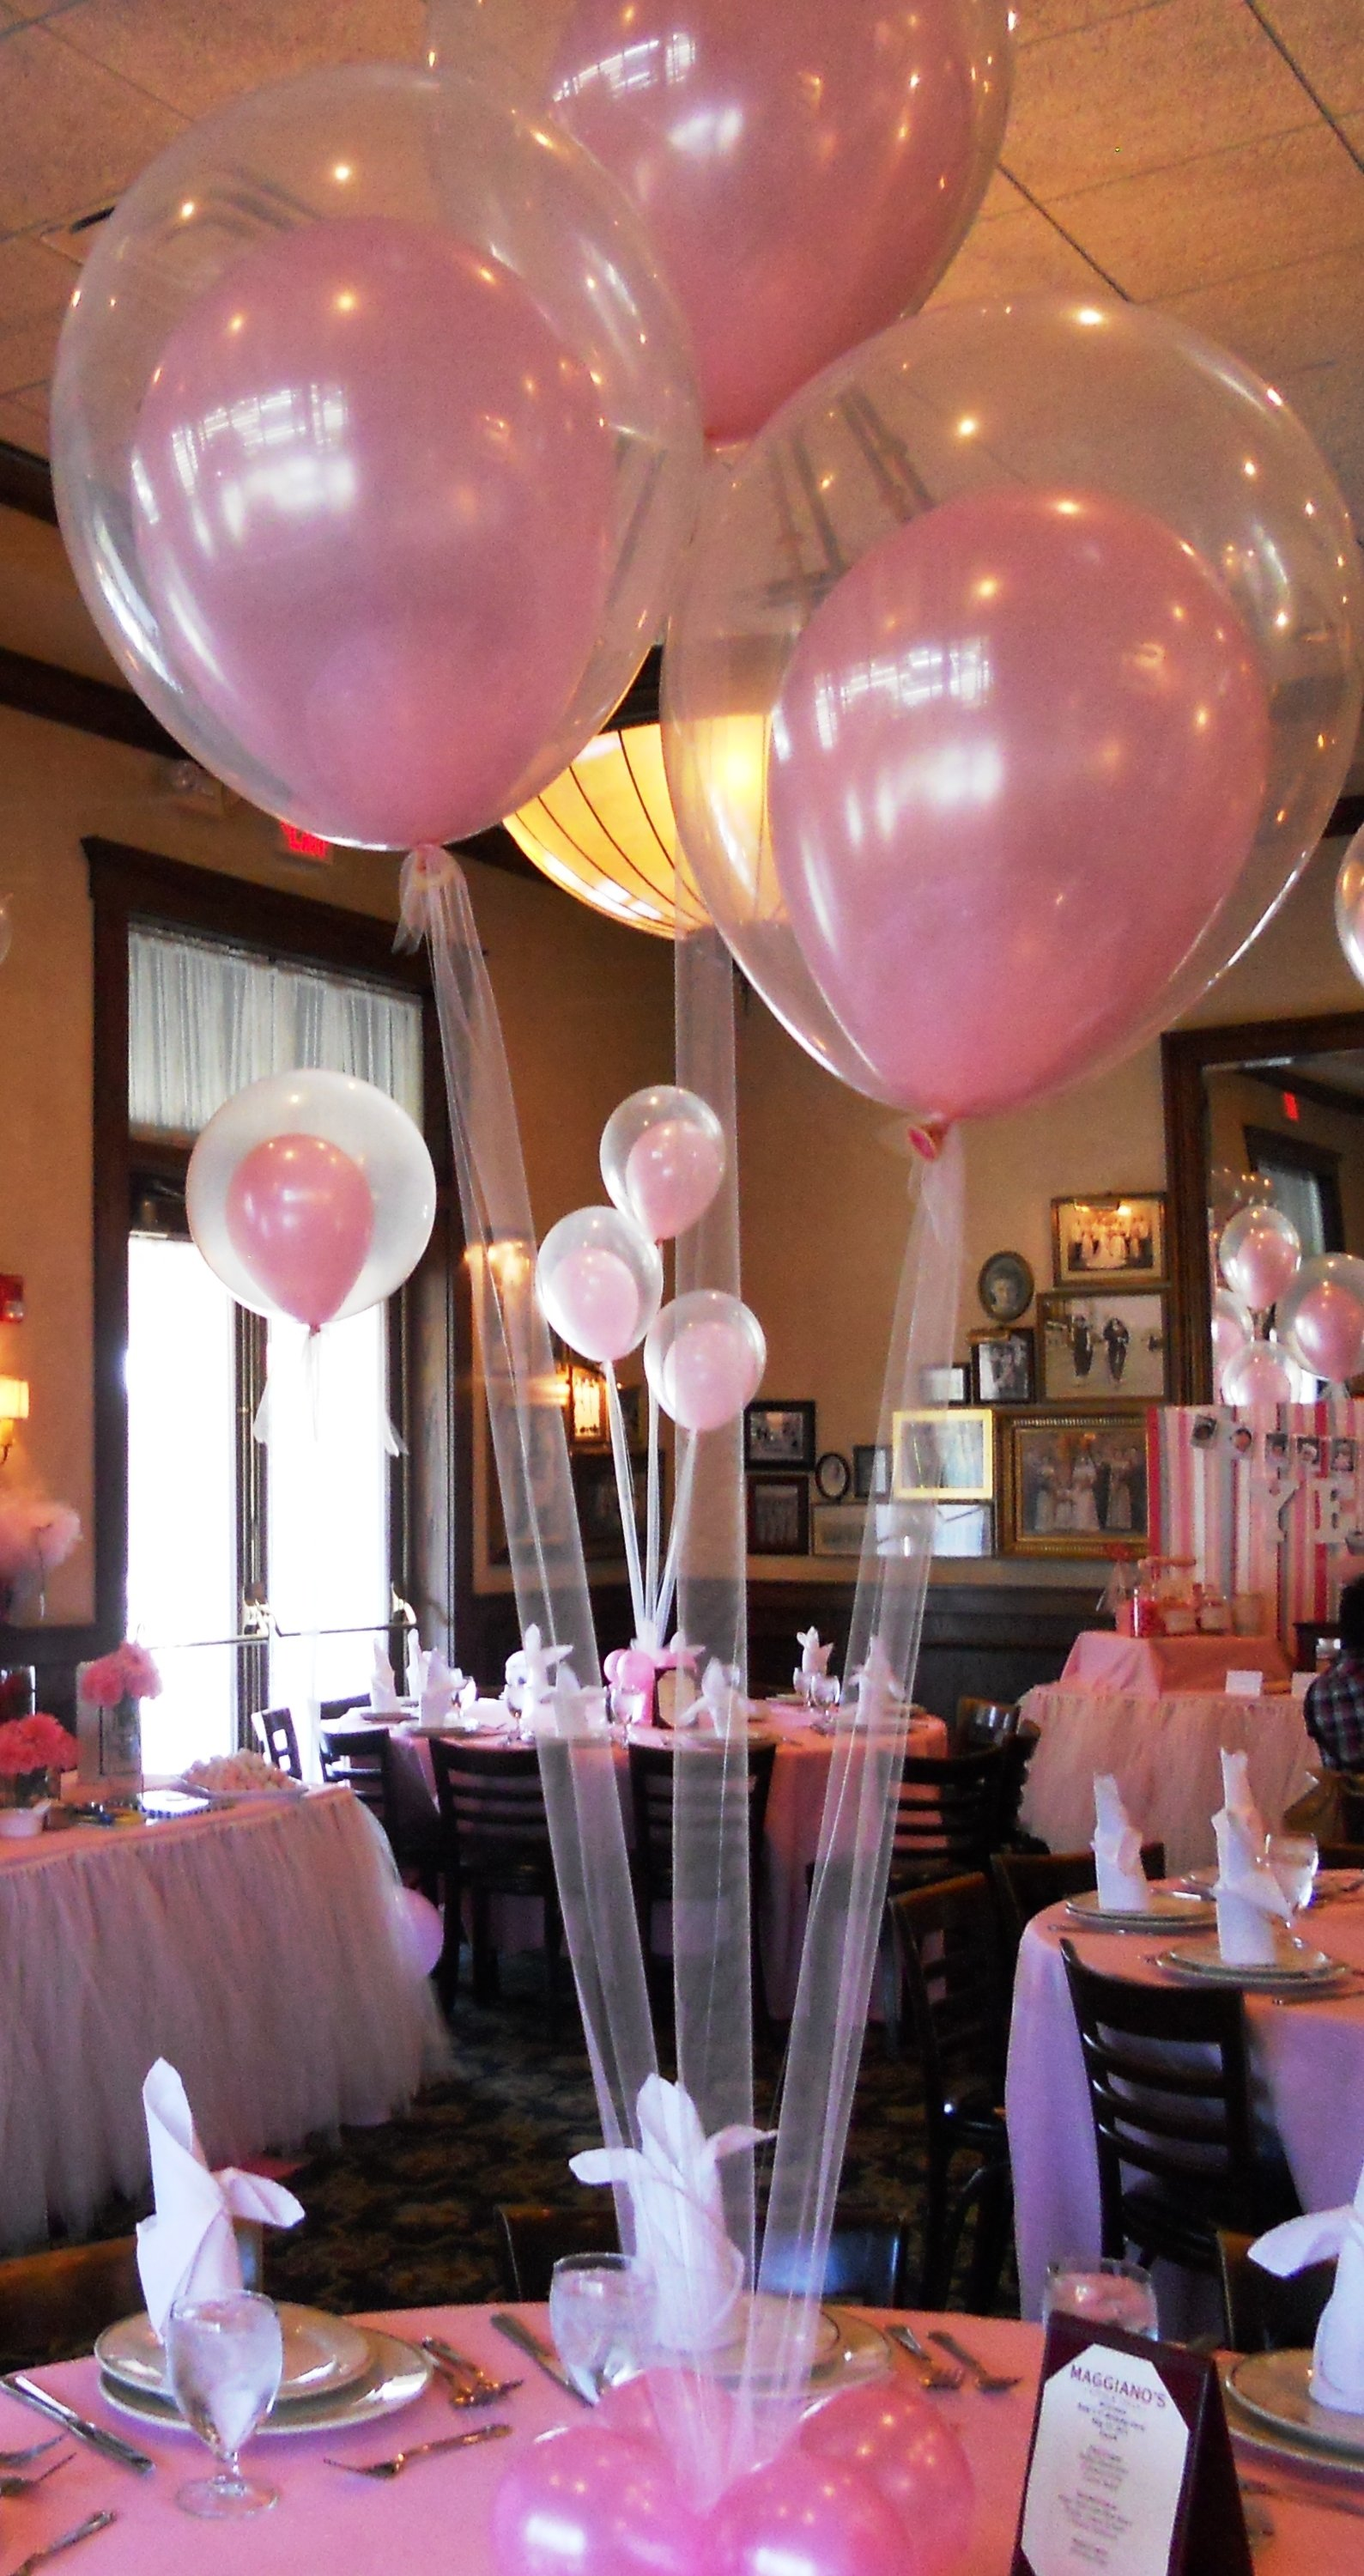 10 Stunning Sweet Sixteen Ideas No Party tulle instead of string for a party balloonslove this idea for a 2021